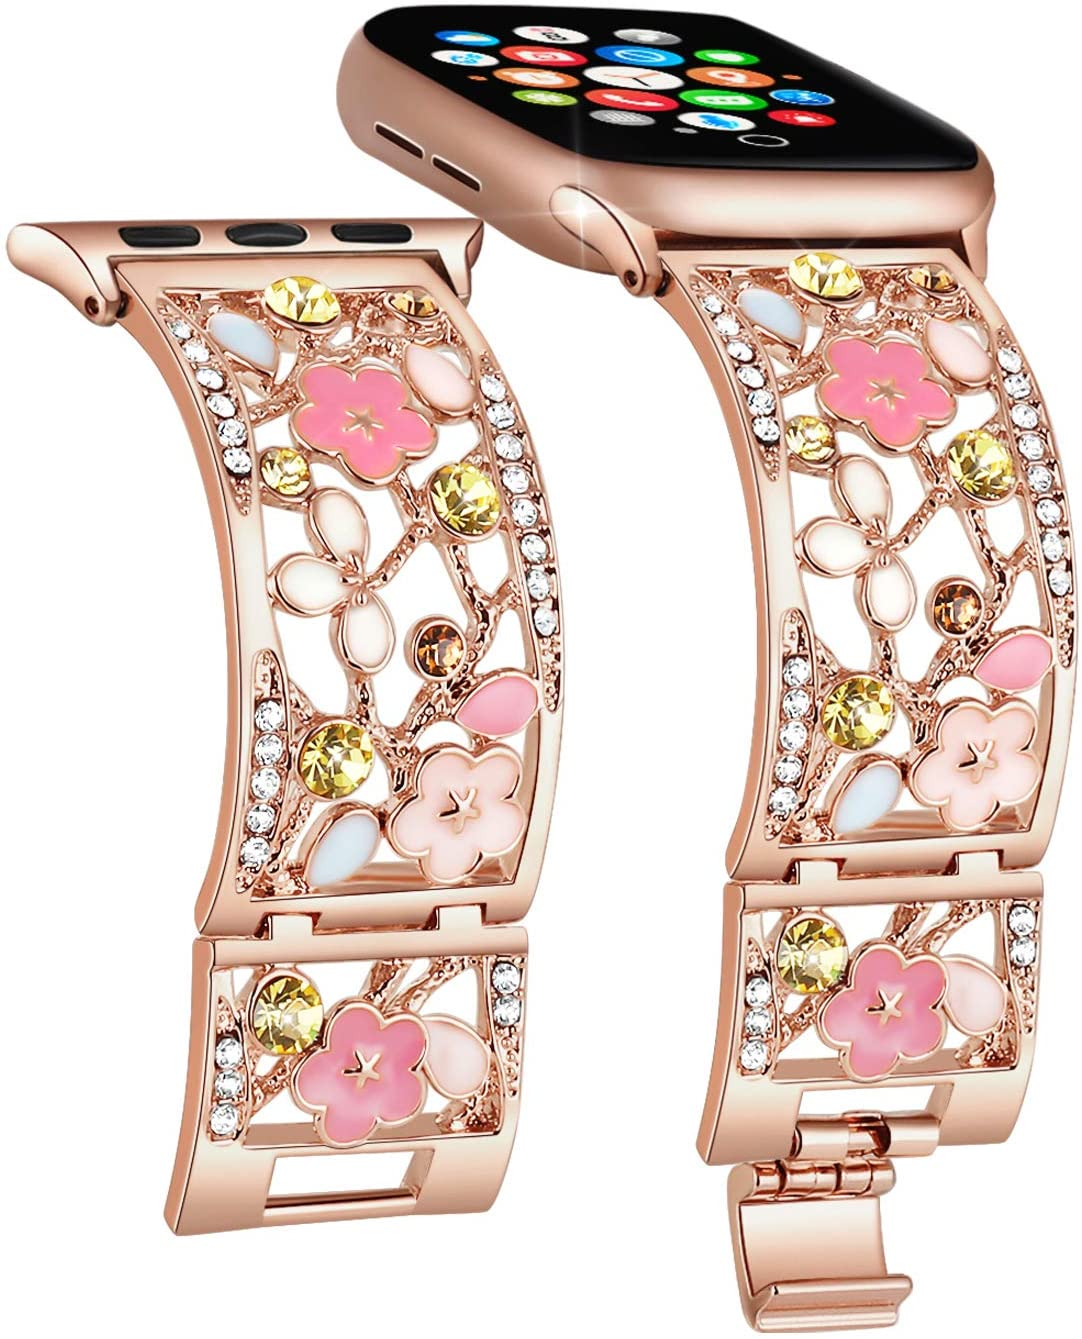 Duoan Floral Bracelet Compatible with Apple Watch Band 38mm 40mm 42mm 44mm iWatch Bands Series 6 5 4, Bling Crystal Dressy Hollow Metal Cuff Strap, Chic Women's Jewelry Wristband (38mm/40mm Rose Gold)